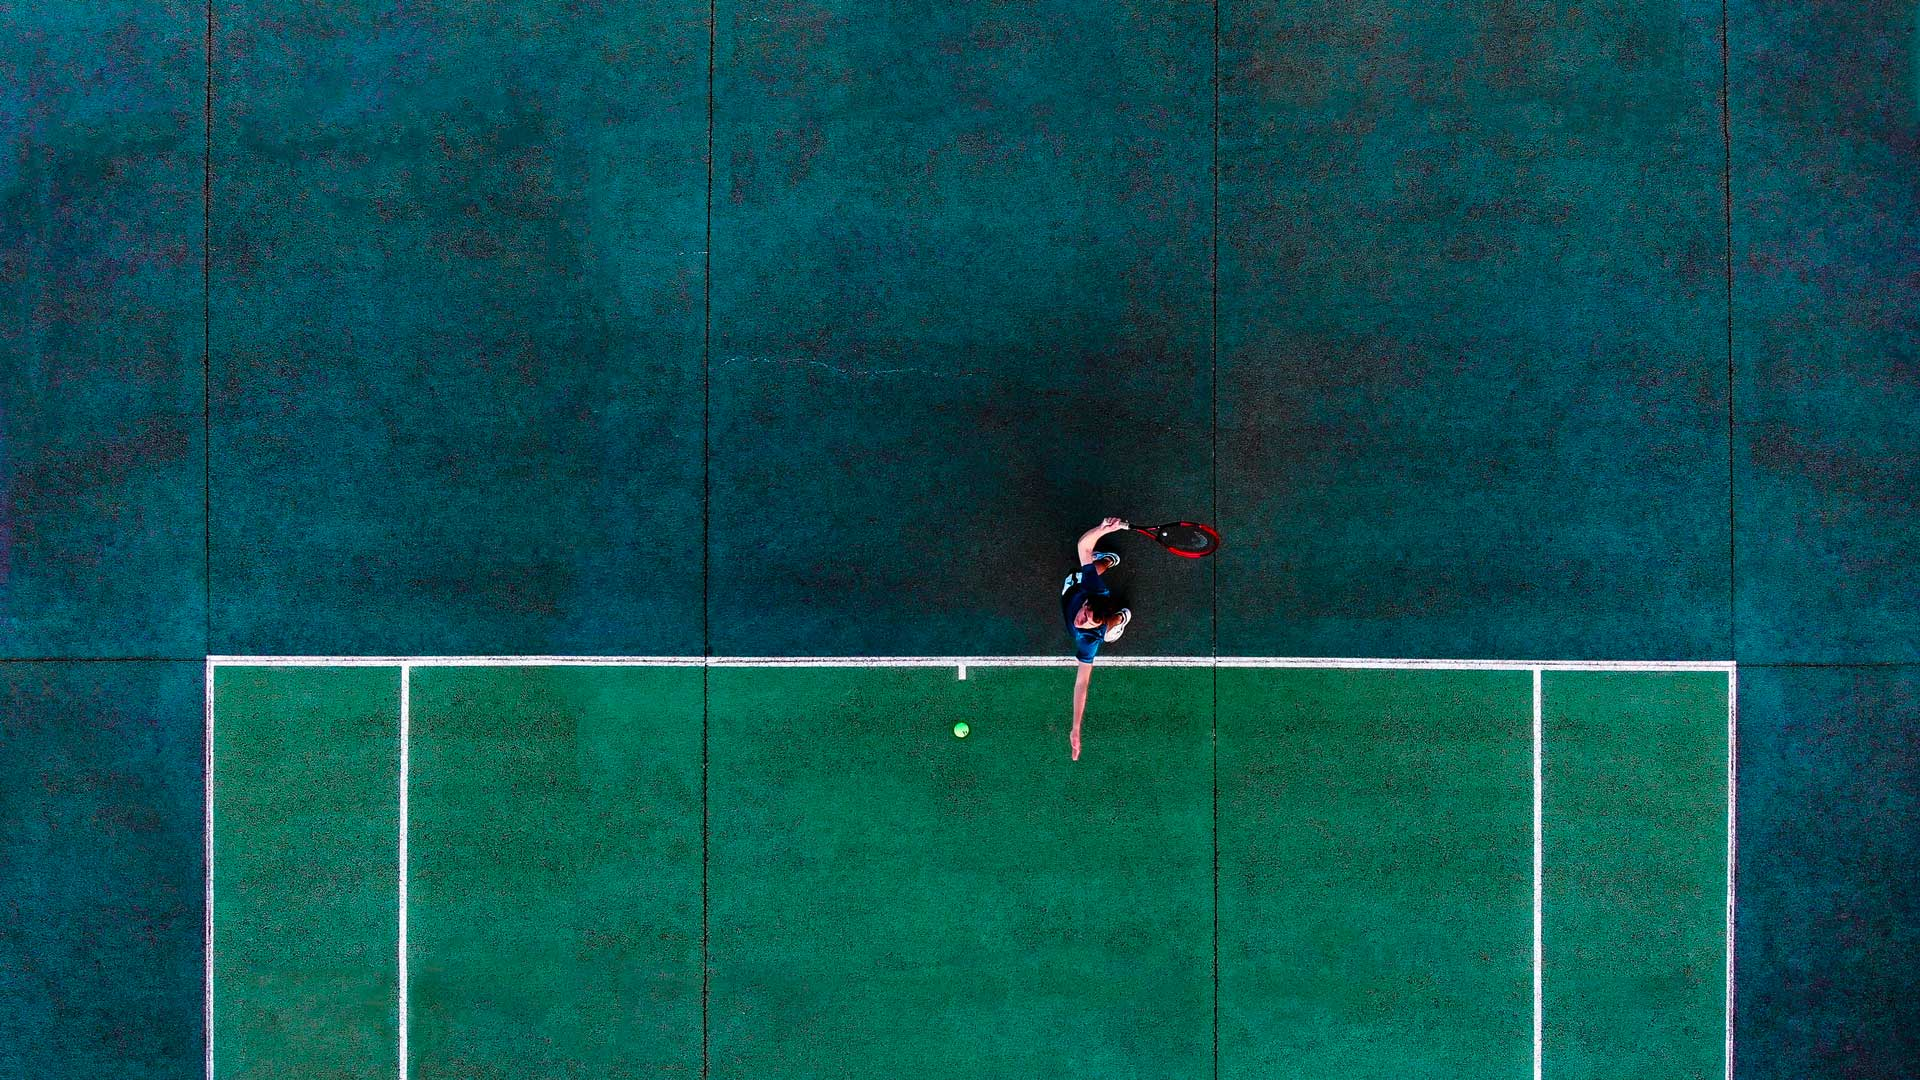 Photograph of a tennis player